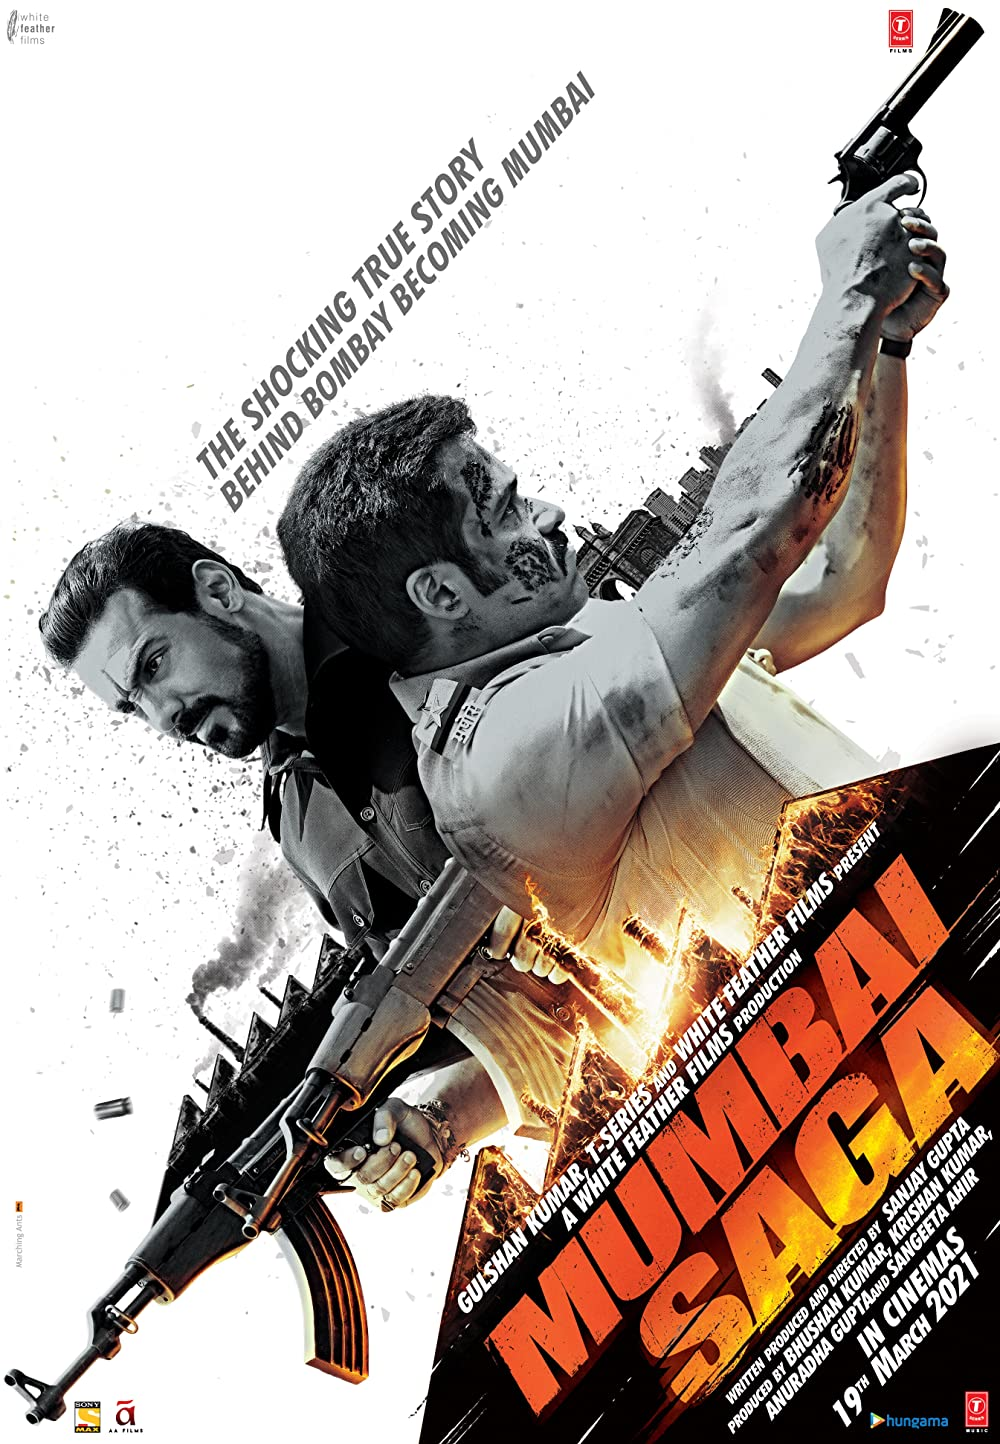 Mumbai Saga 2021 Hindi Movie 720p AMZN HDRip 1.1GB | 385MB Download